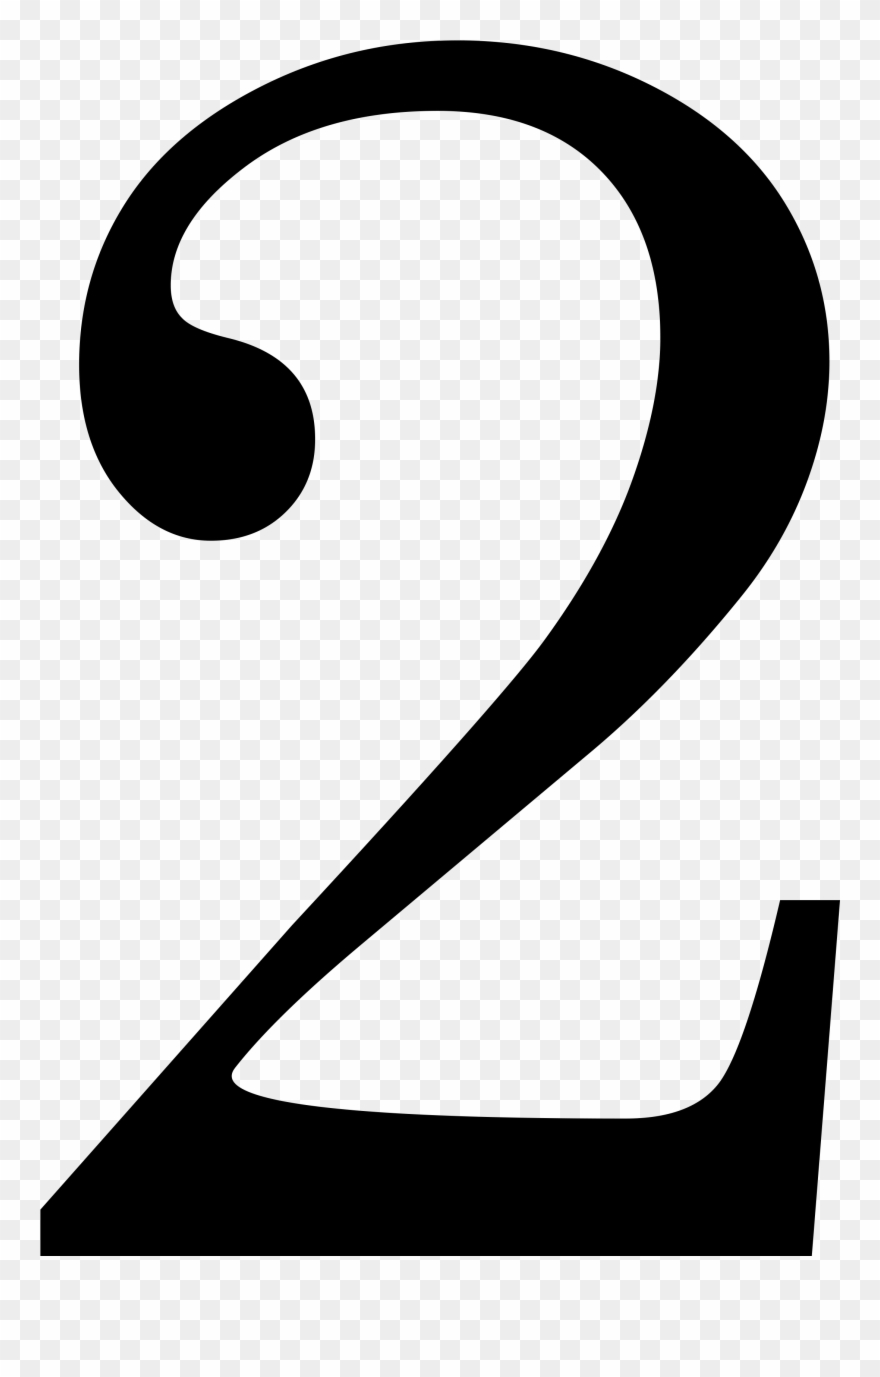 Number 2 Clipart Different Font.